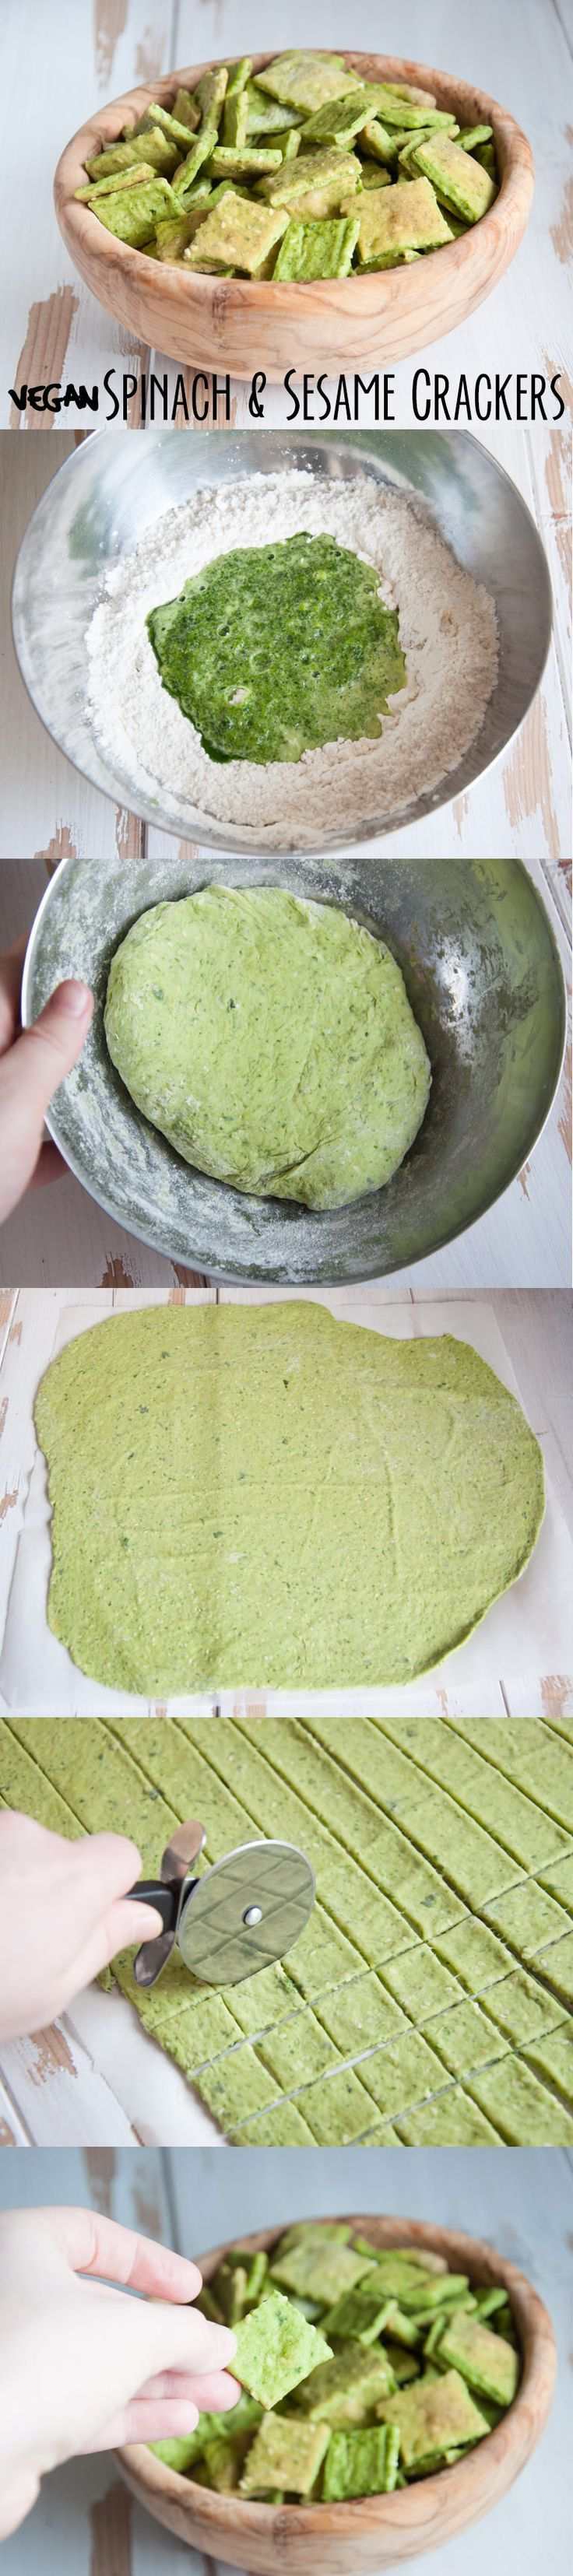 #vegan Spinach & Sesame Crackers from http://ElephantasticVegan.com